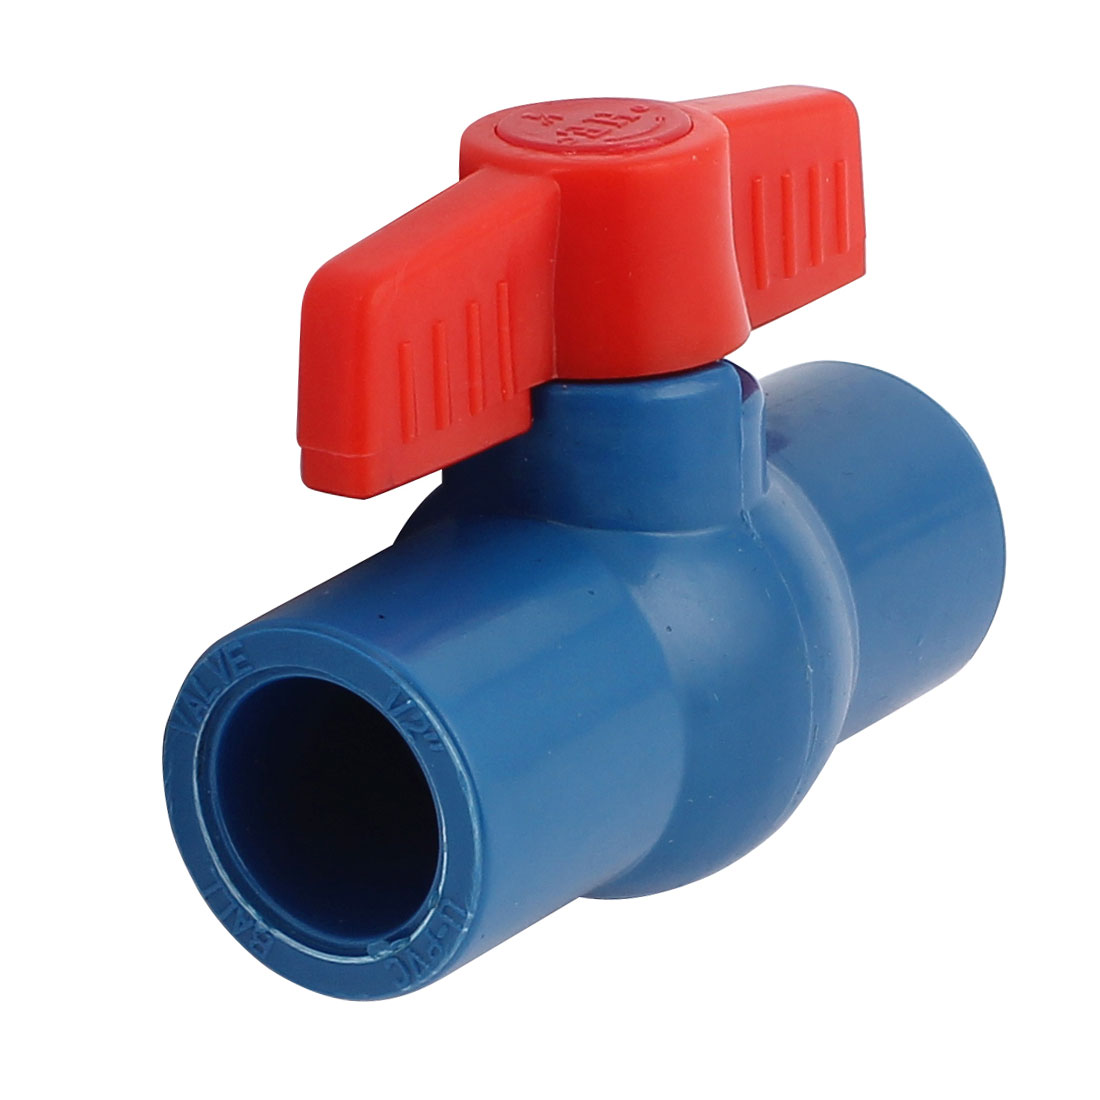 Water Pipe 20mm to 20mm Red Rotary Knob Plastic Tap Faucet Water Stop Valve